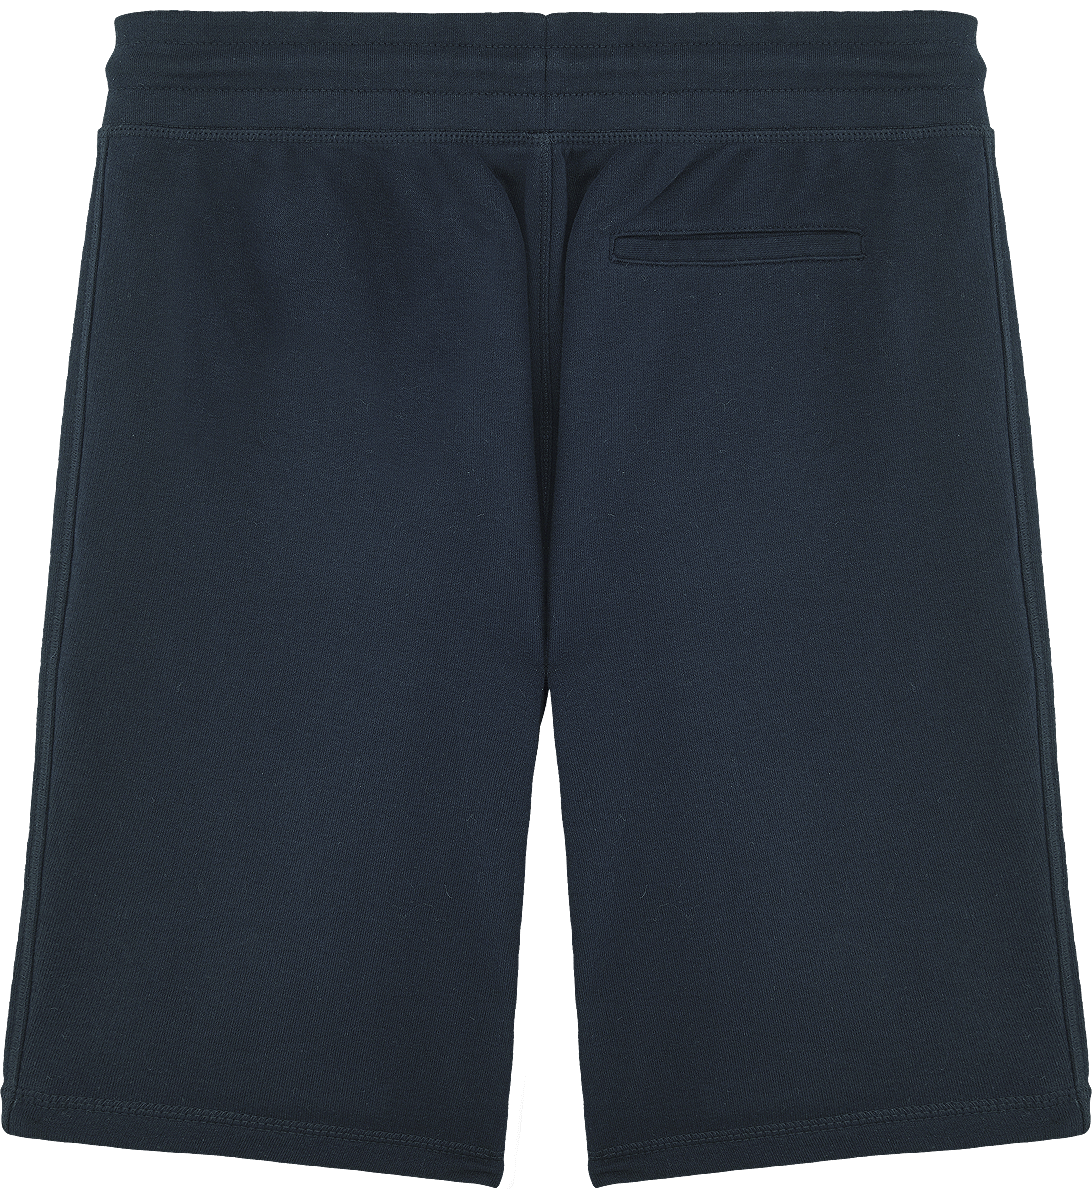 Mens Official Don Signature Light Jogging Shorts - Homme>Vêtements De Sport